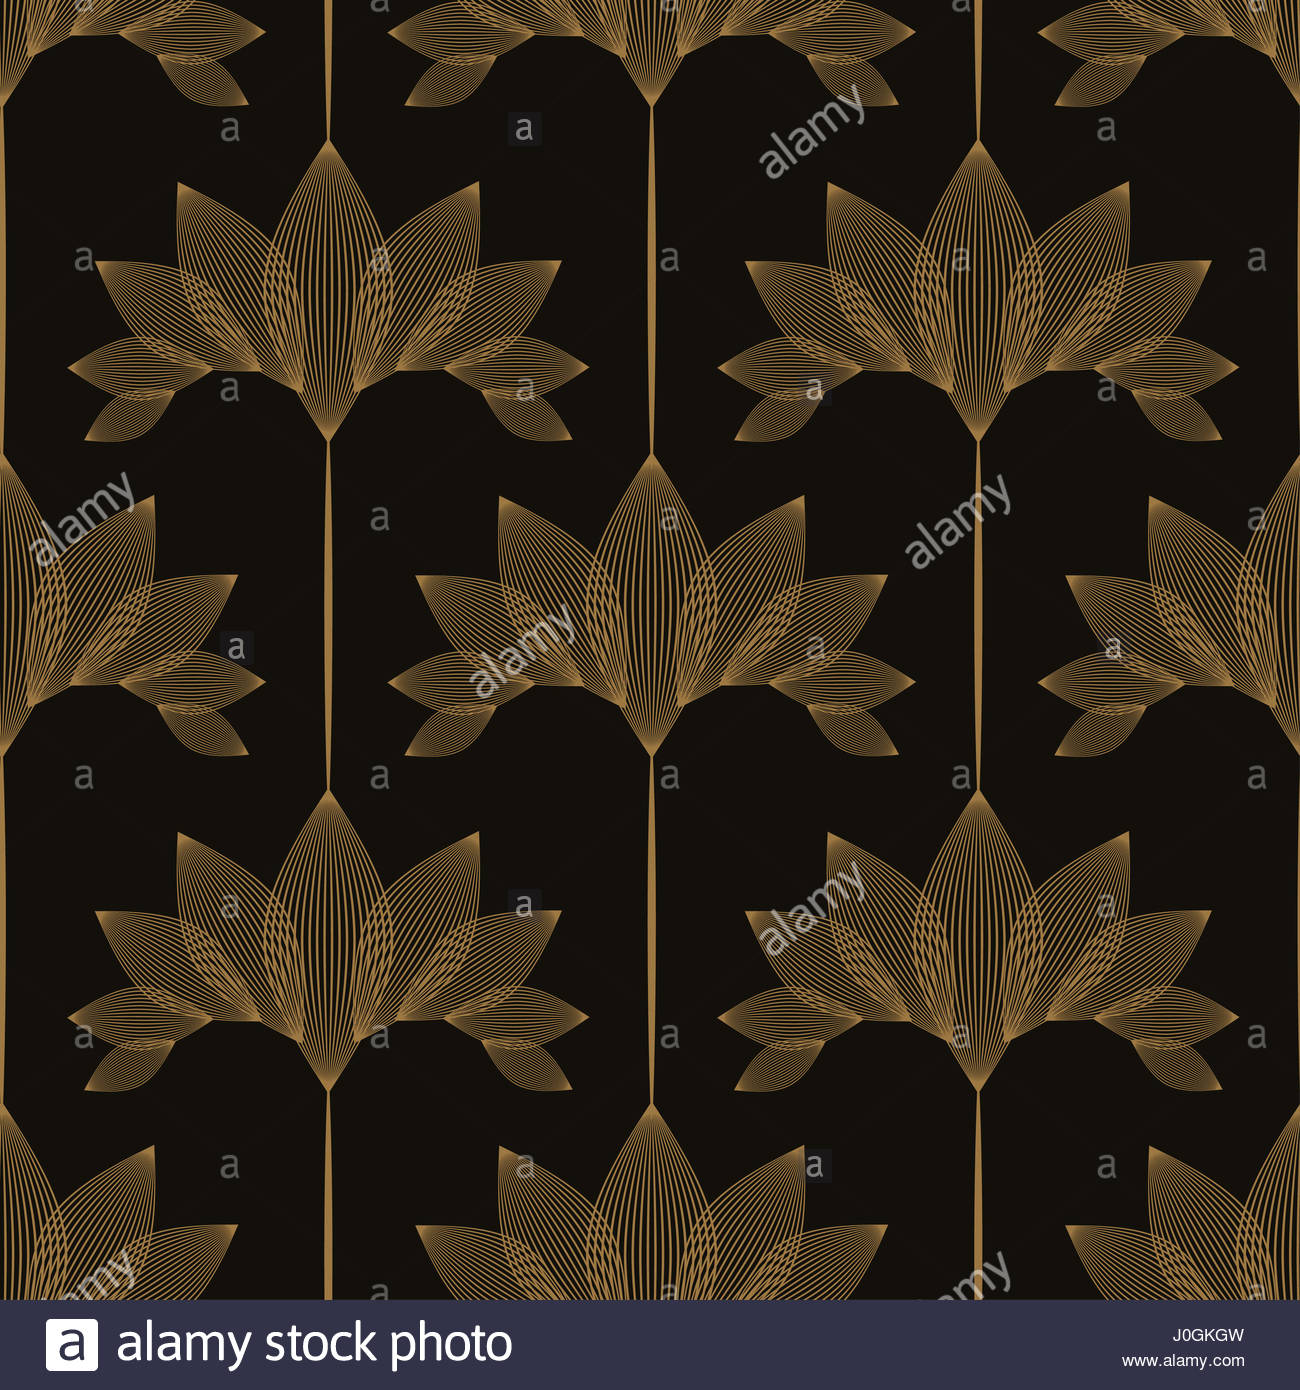 Vintage Style Floral Wallpaper With Lotus Pattern In Black And